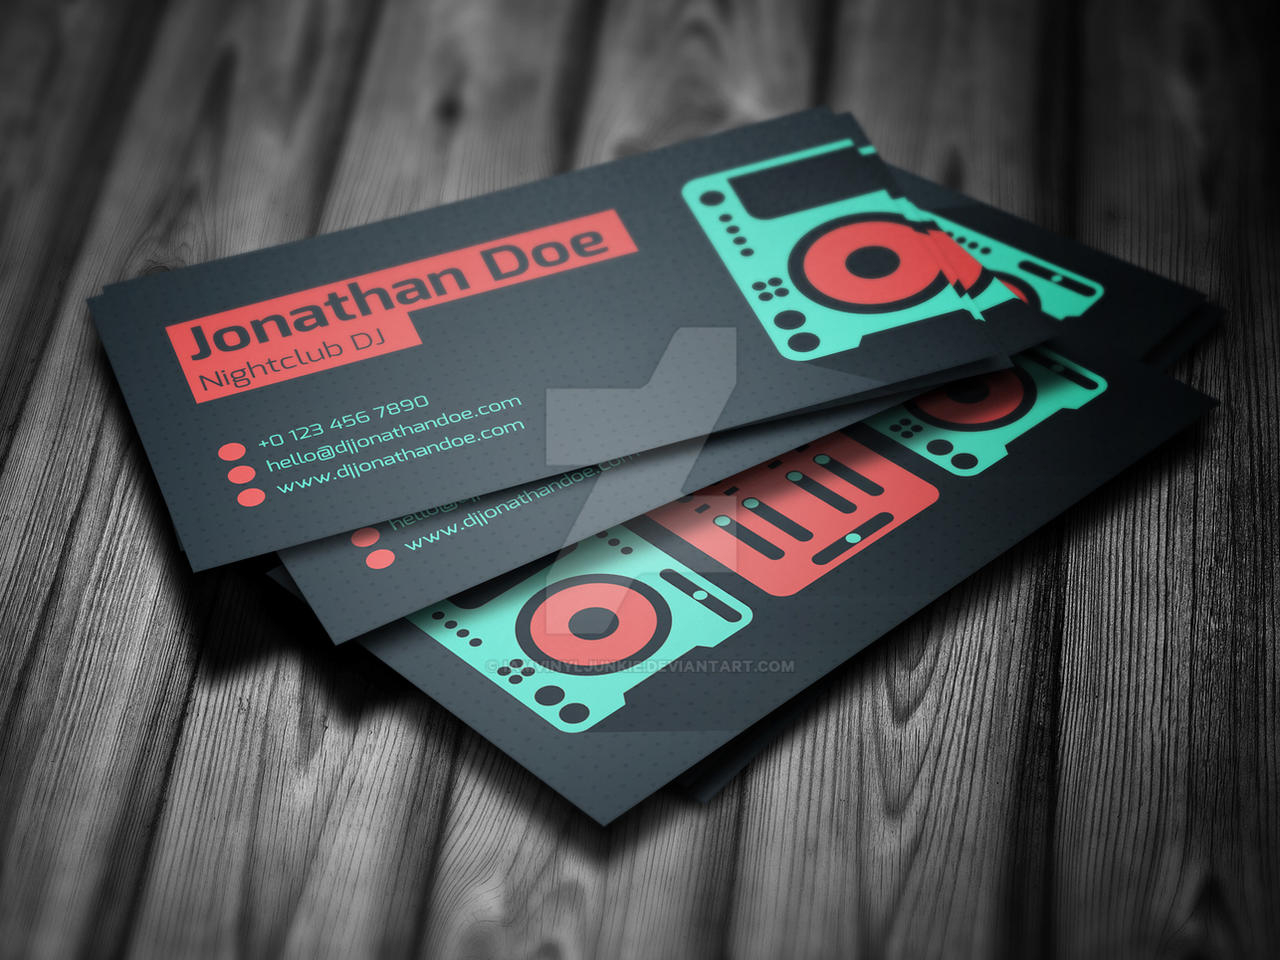 Dj business cards by iamvinyljunkie on deviantart iamvinyljunkie 11 1 flat dj business card psd template by iamvinyljunkie reheart Image collections